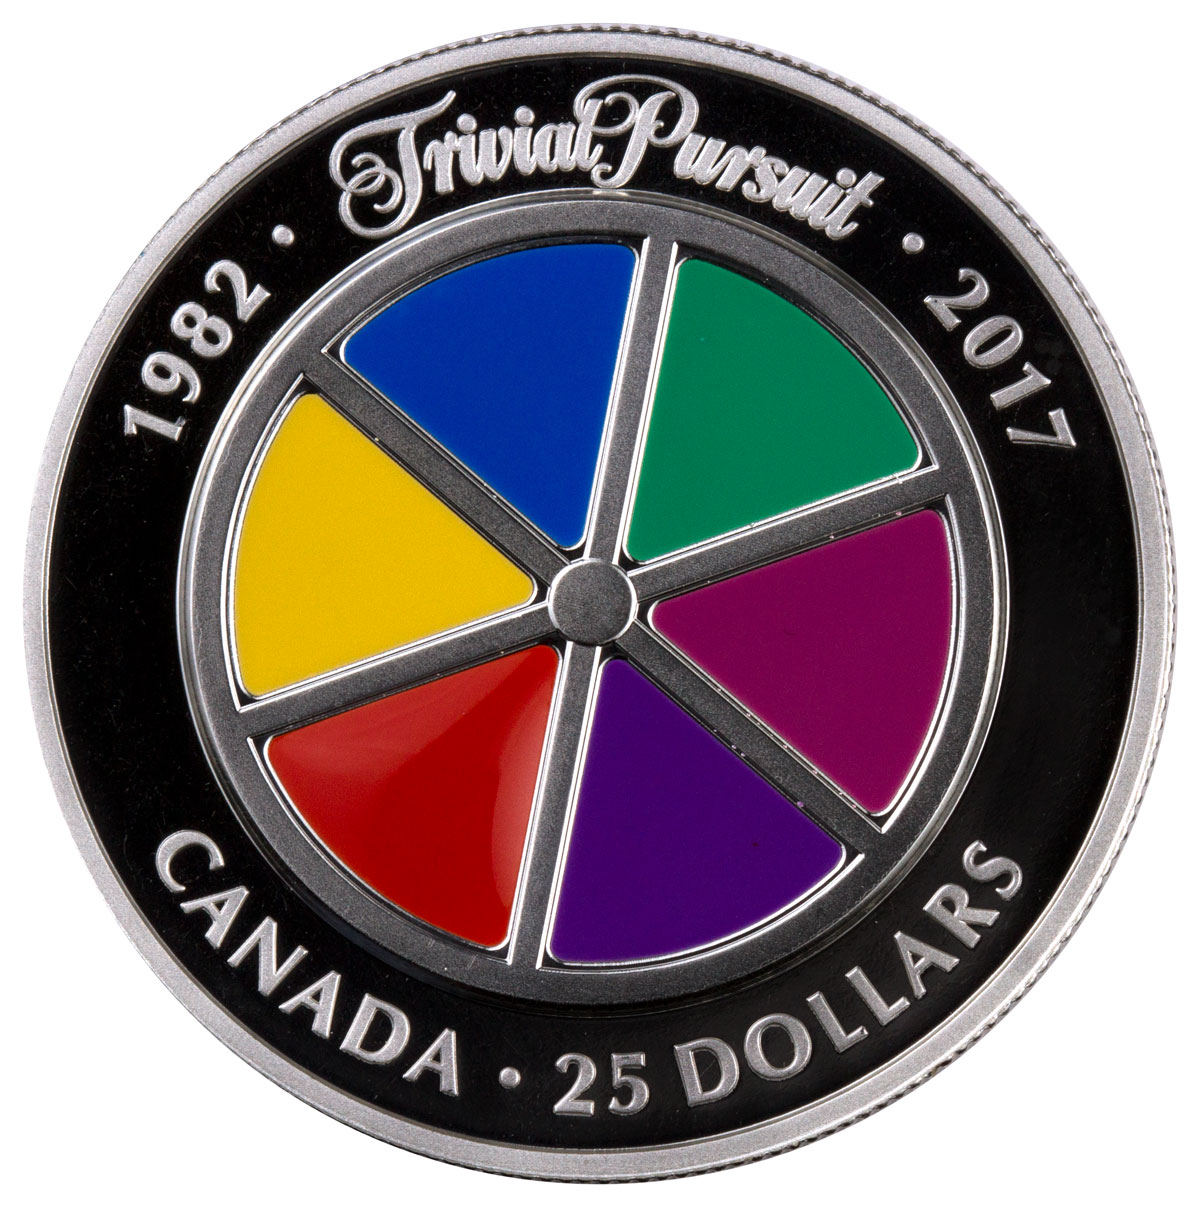 2017 Canada Trivial Pursuit 35th Anniversary Piedfort 1 oz Silver Enameled Proof $25 Coin GEM Proof (OGP)